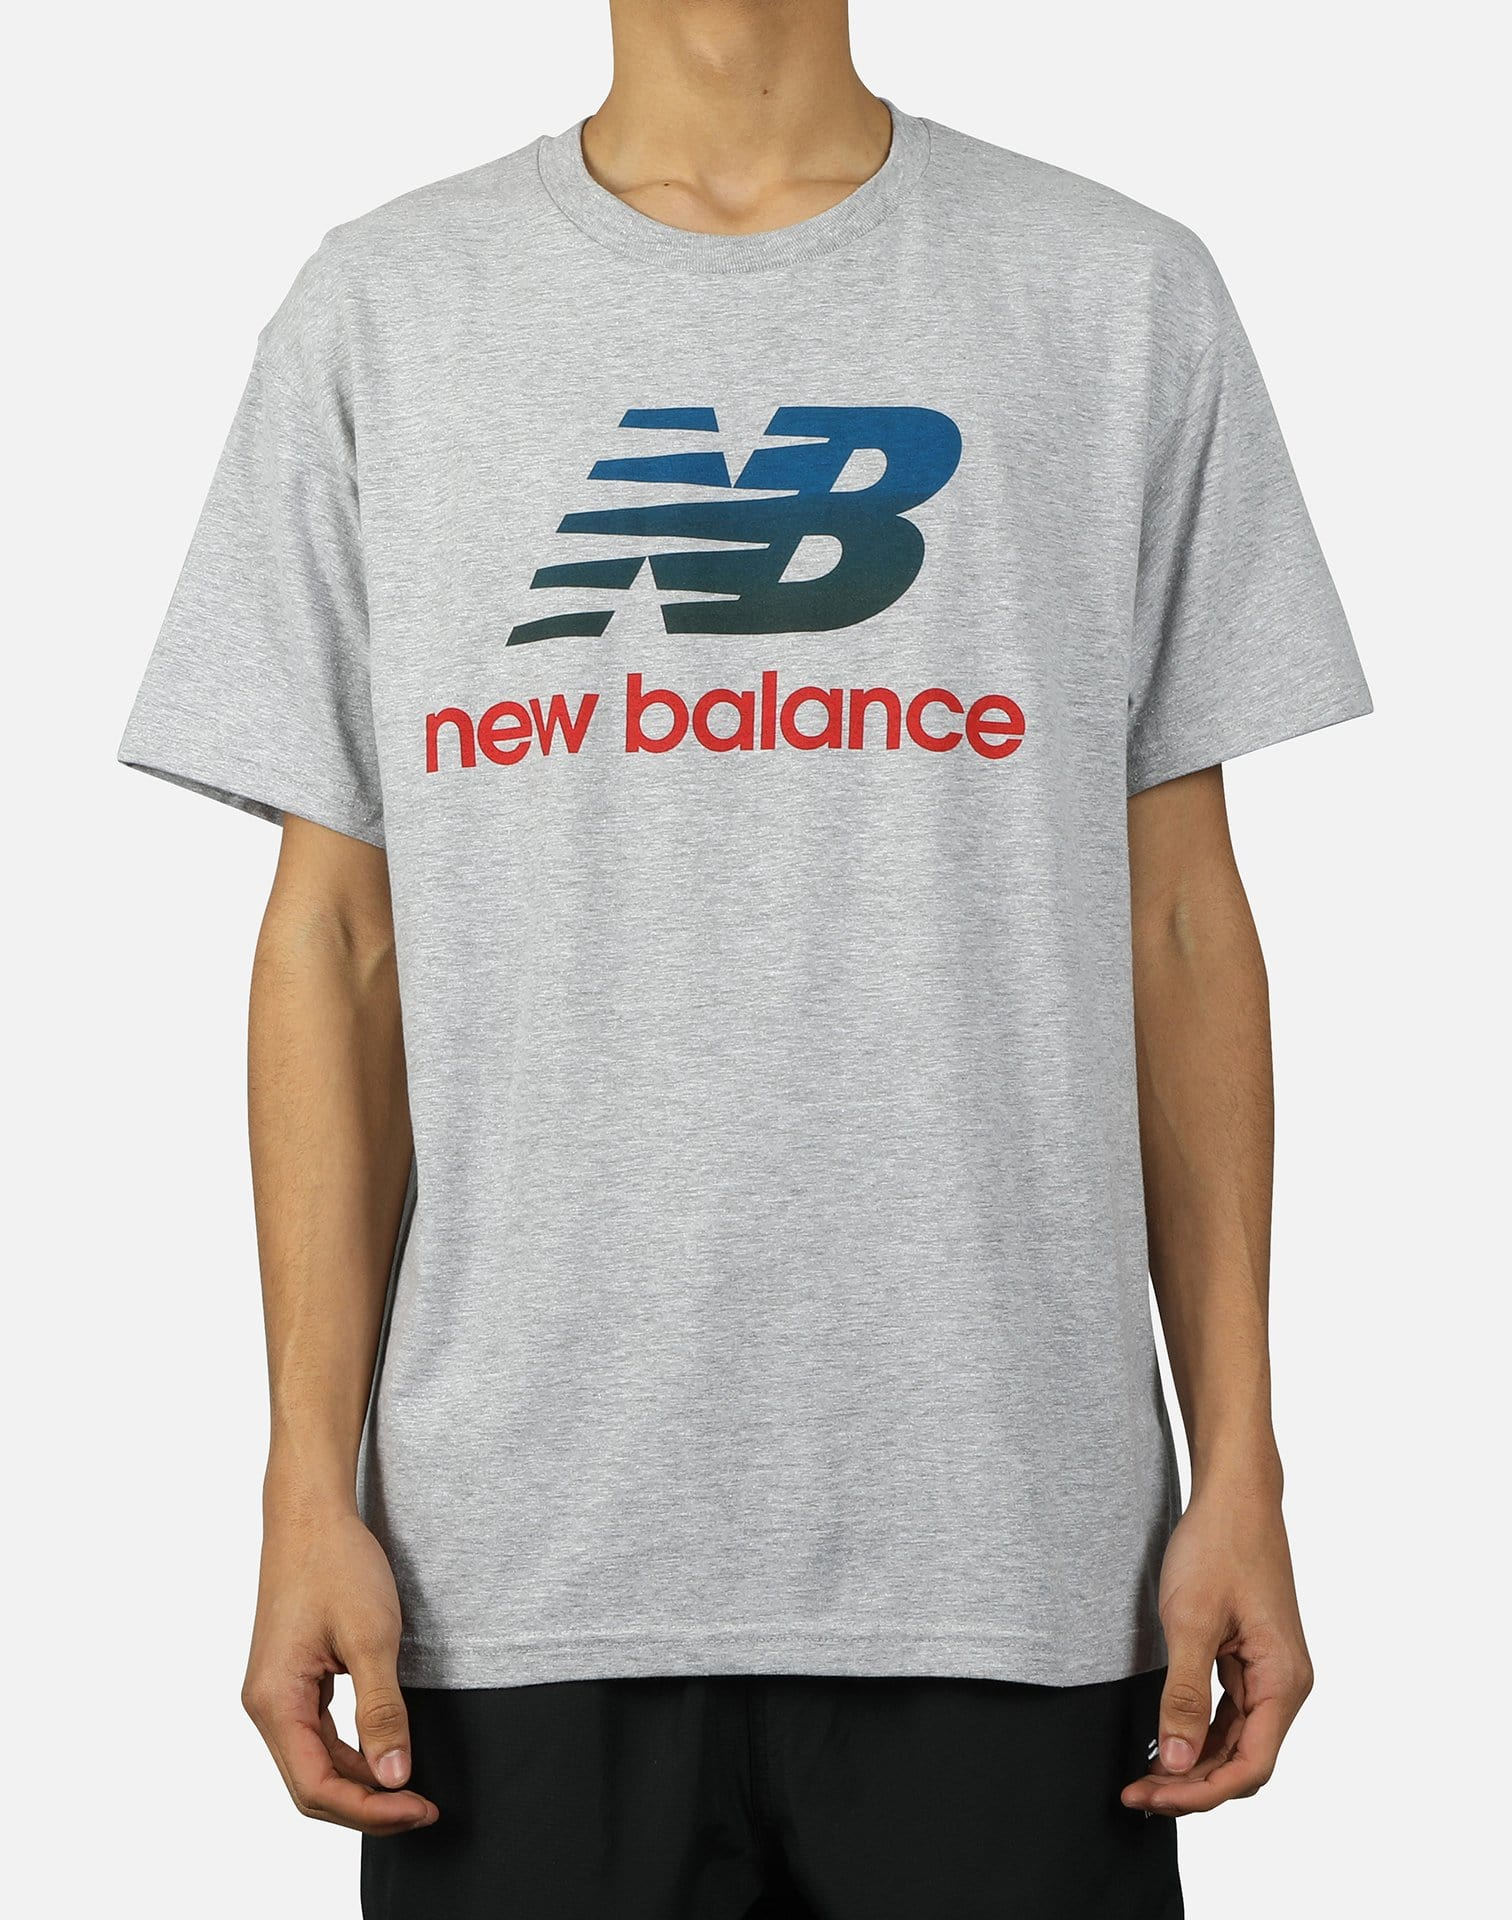 NewBalance NB ATHLETICS SPLIT STACK LOGO TEE